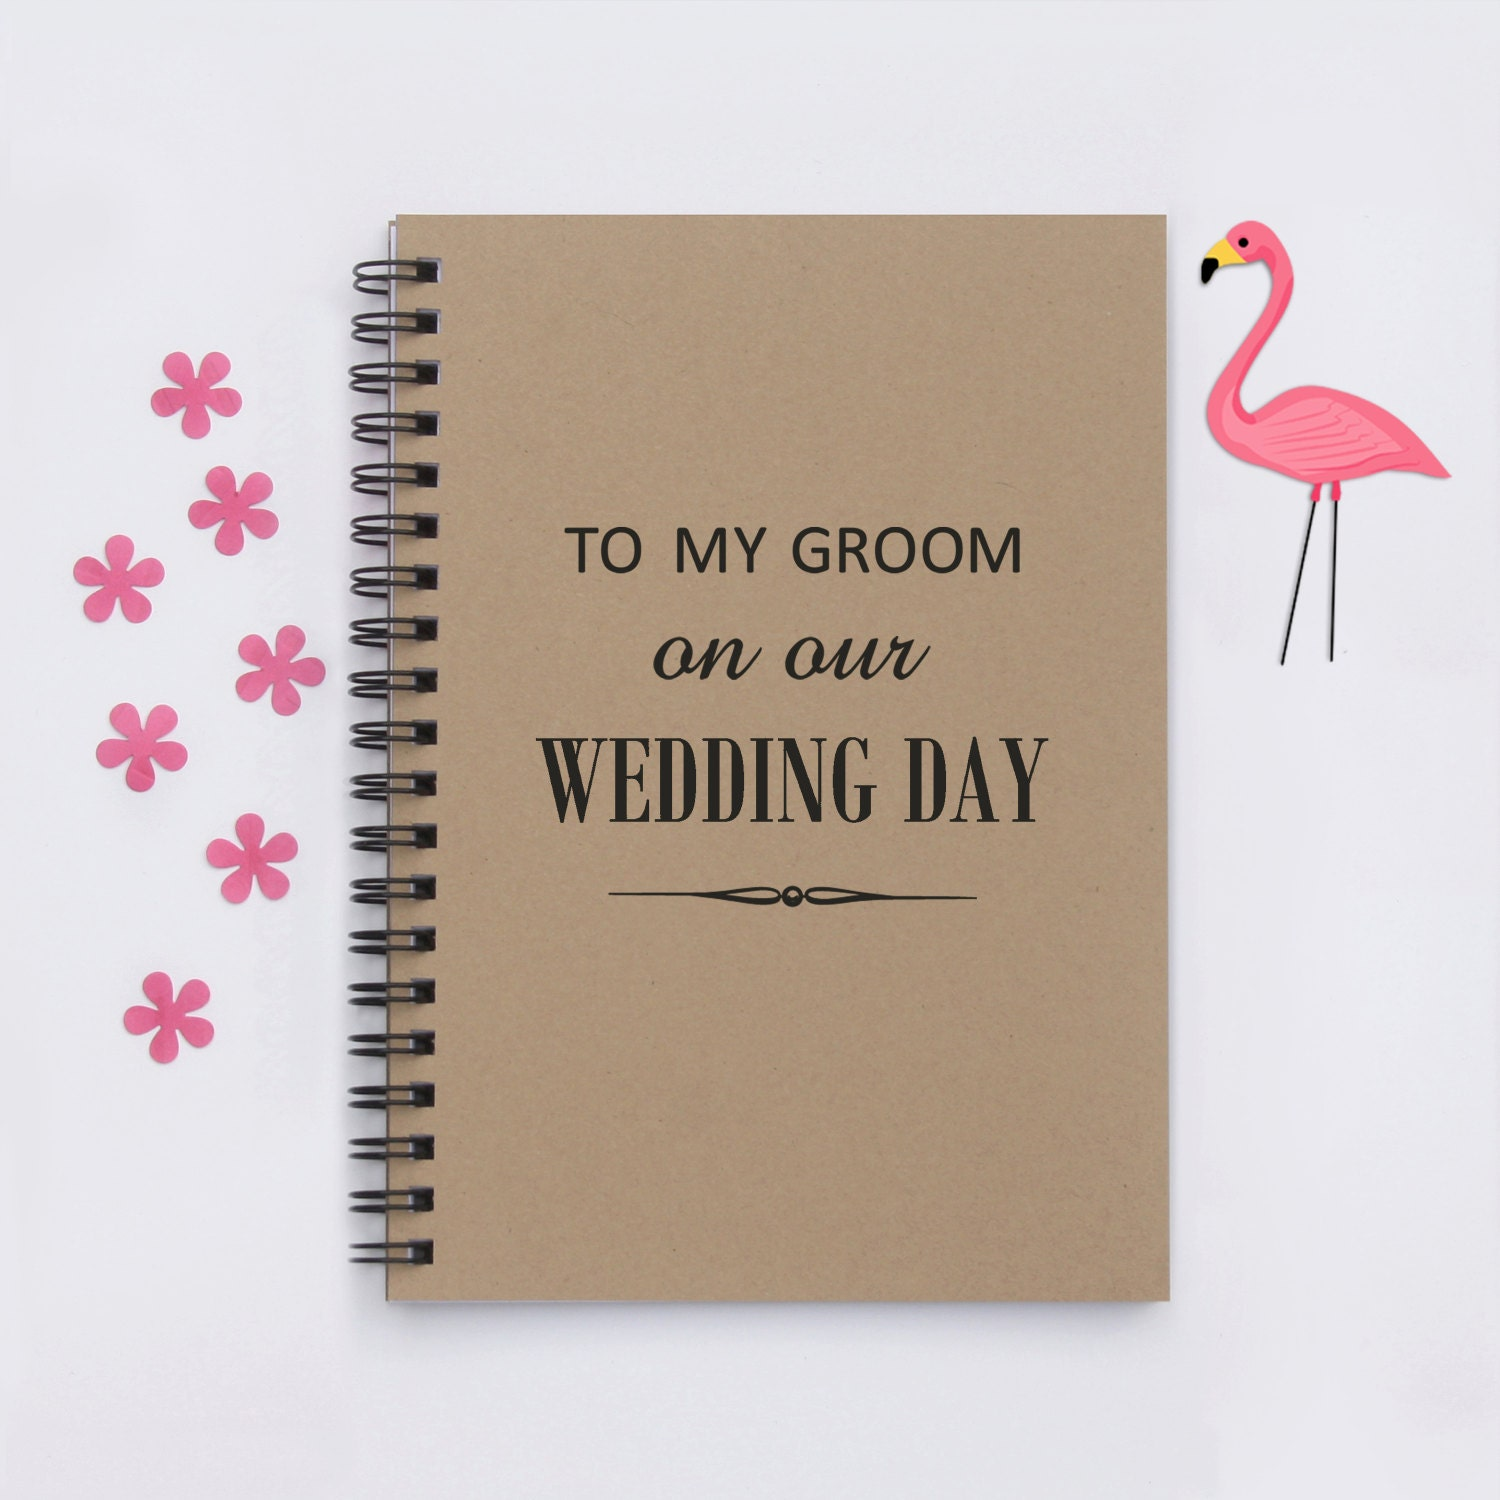 Groom To Bride Wedding Day Gift: Wedding Day Gift To My Groom On Our Wedding Day 5 X